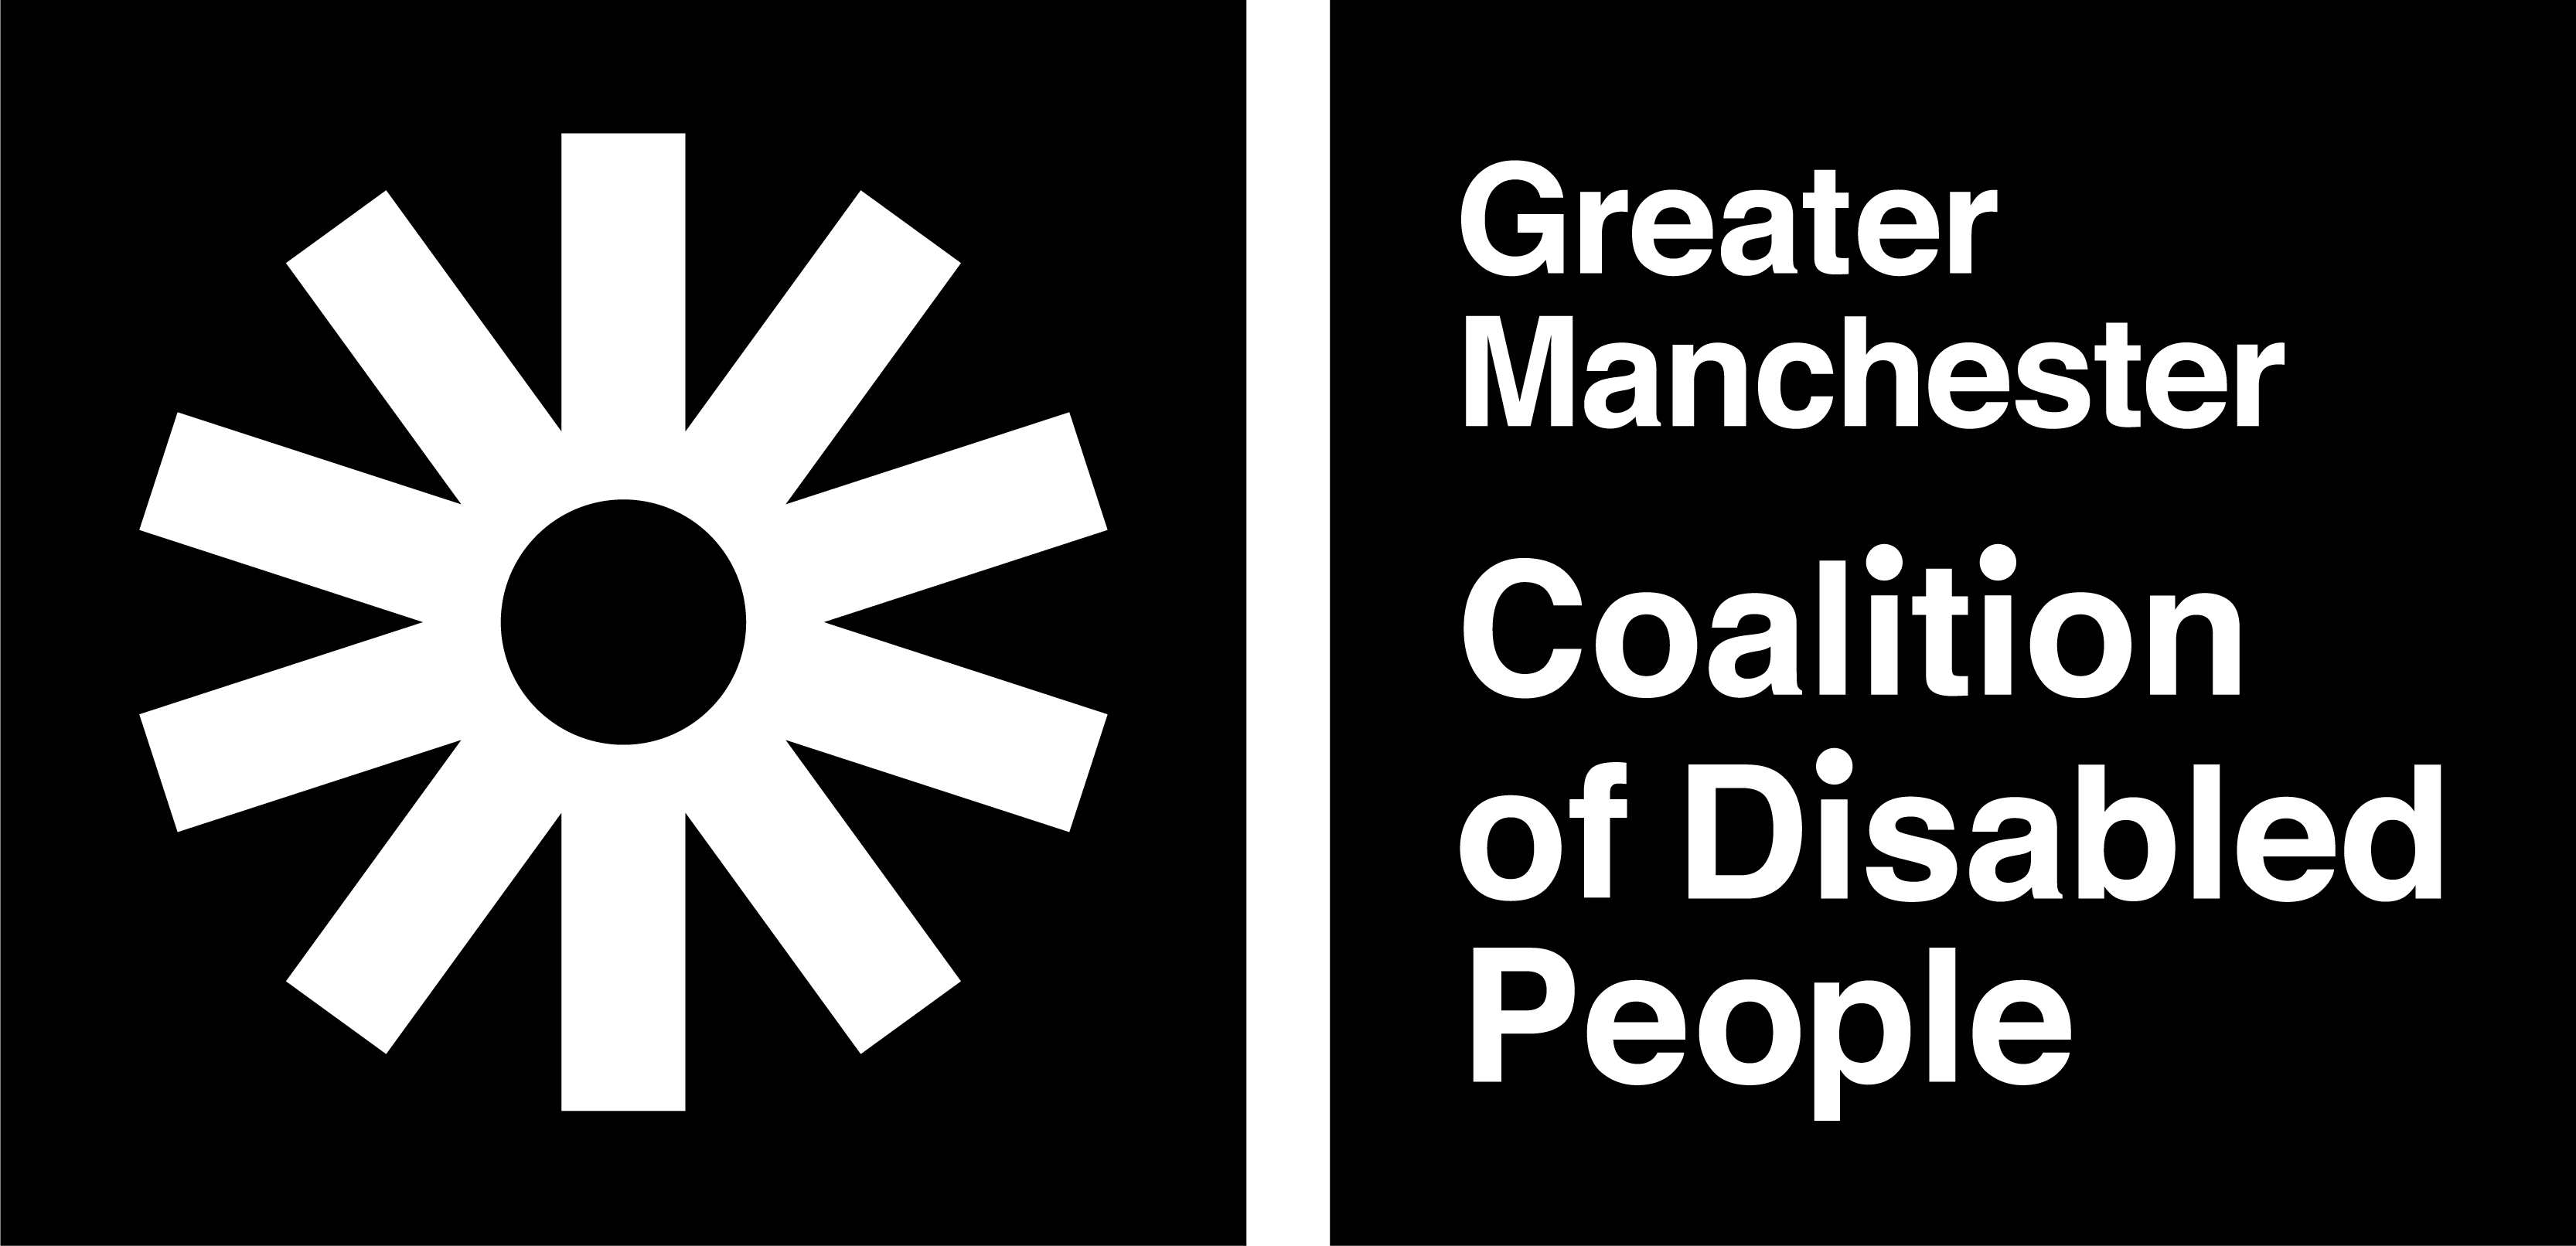 GMCDP logos with motif.png